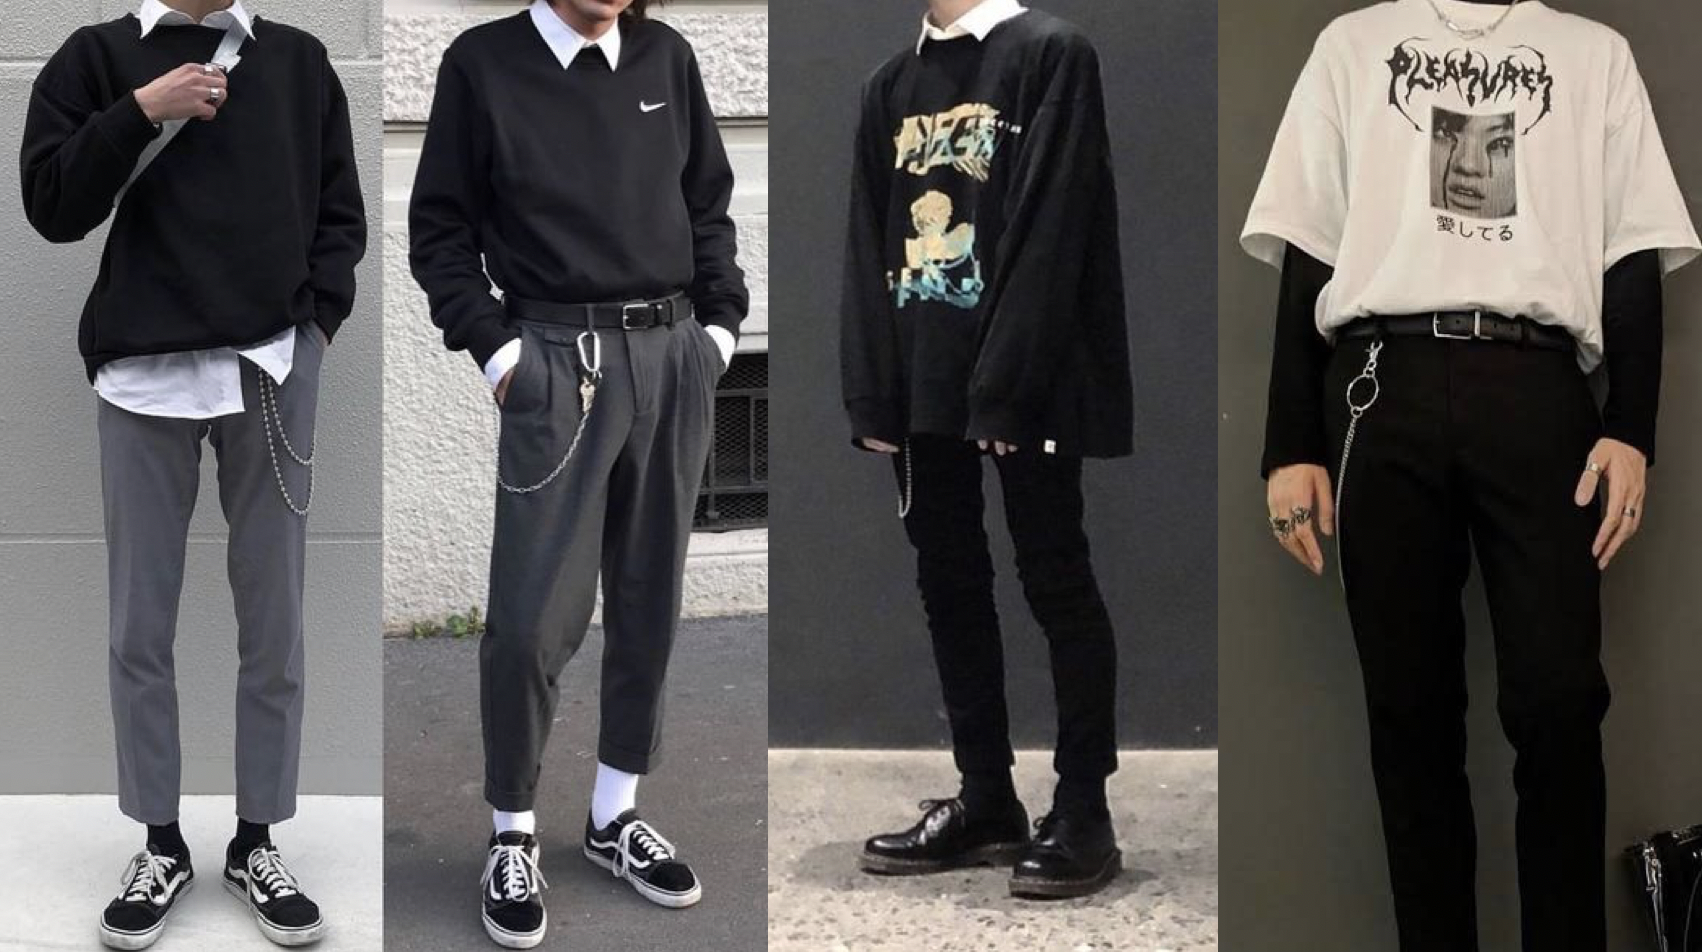 How To Dress Like An Eboy Eboy Outfit Guide Street Fashion Trends